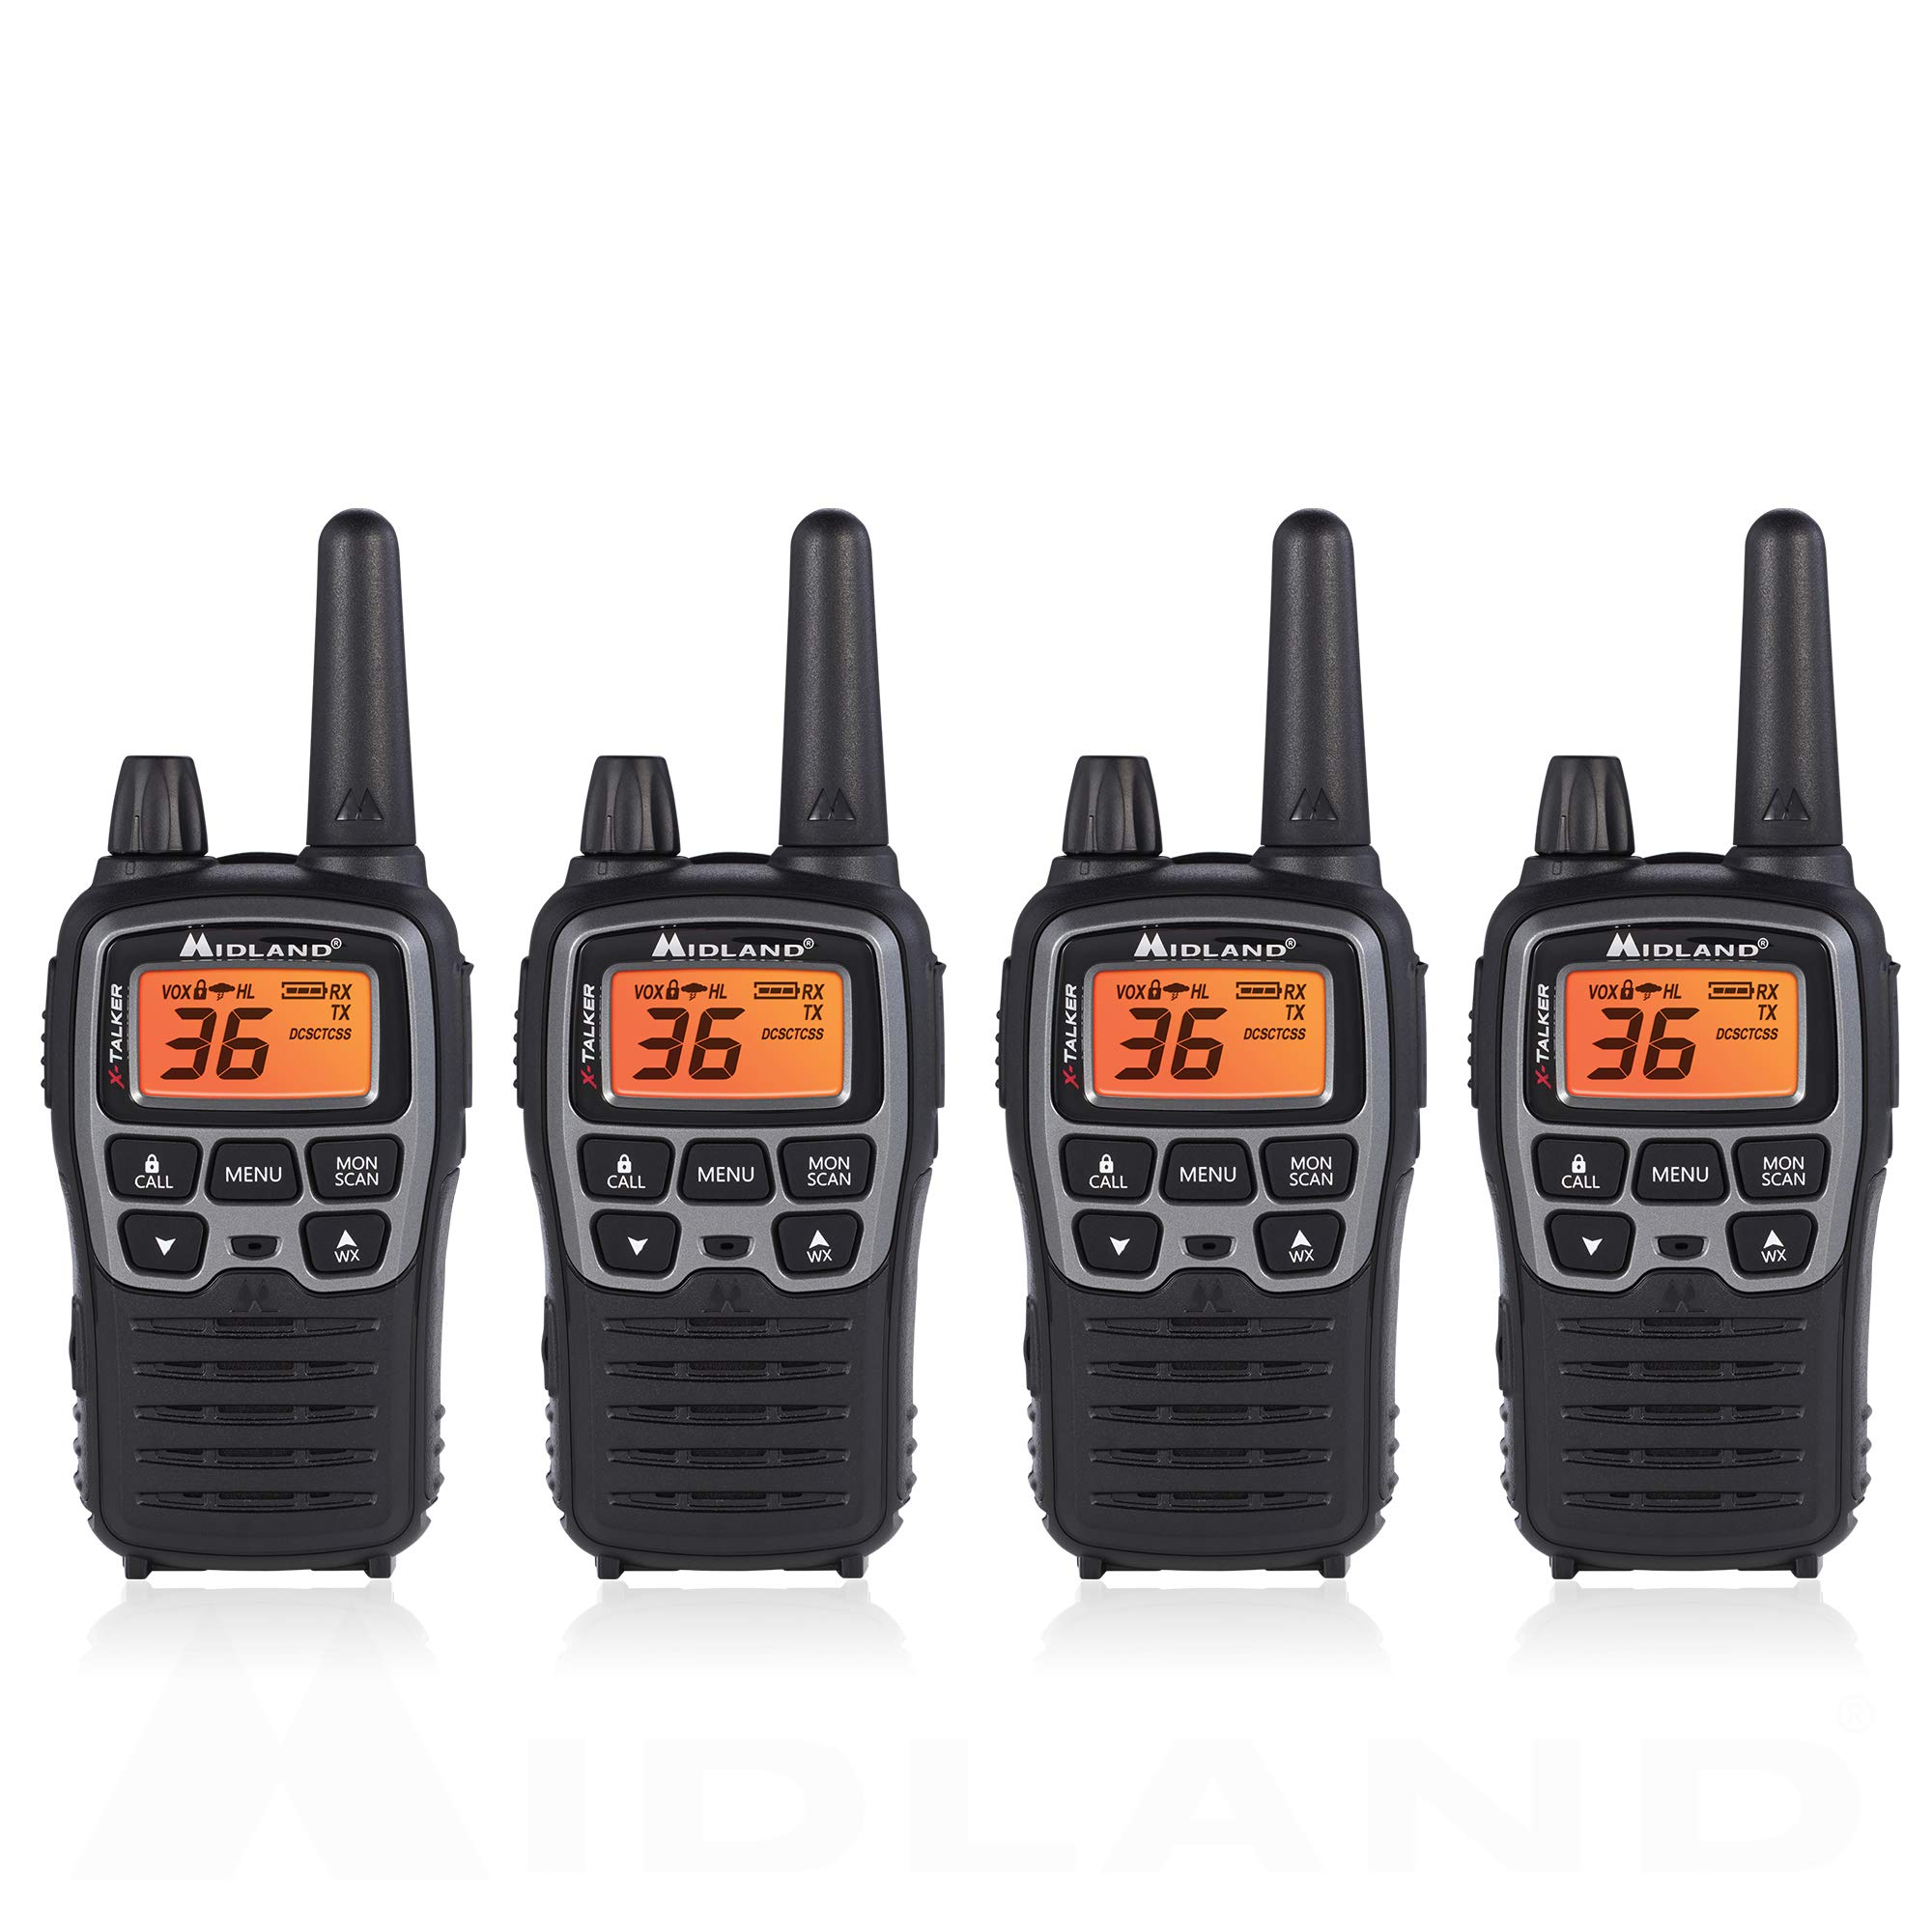 Midland T71VP3 36 Channel FRS Two-Way Radio - Up to 38 Mile Range Walkie Talkie - Black/Silver (Pack of 4)